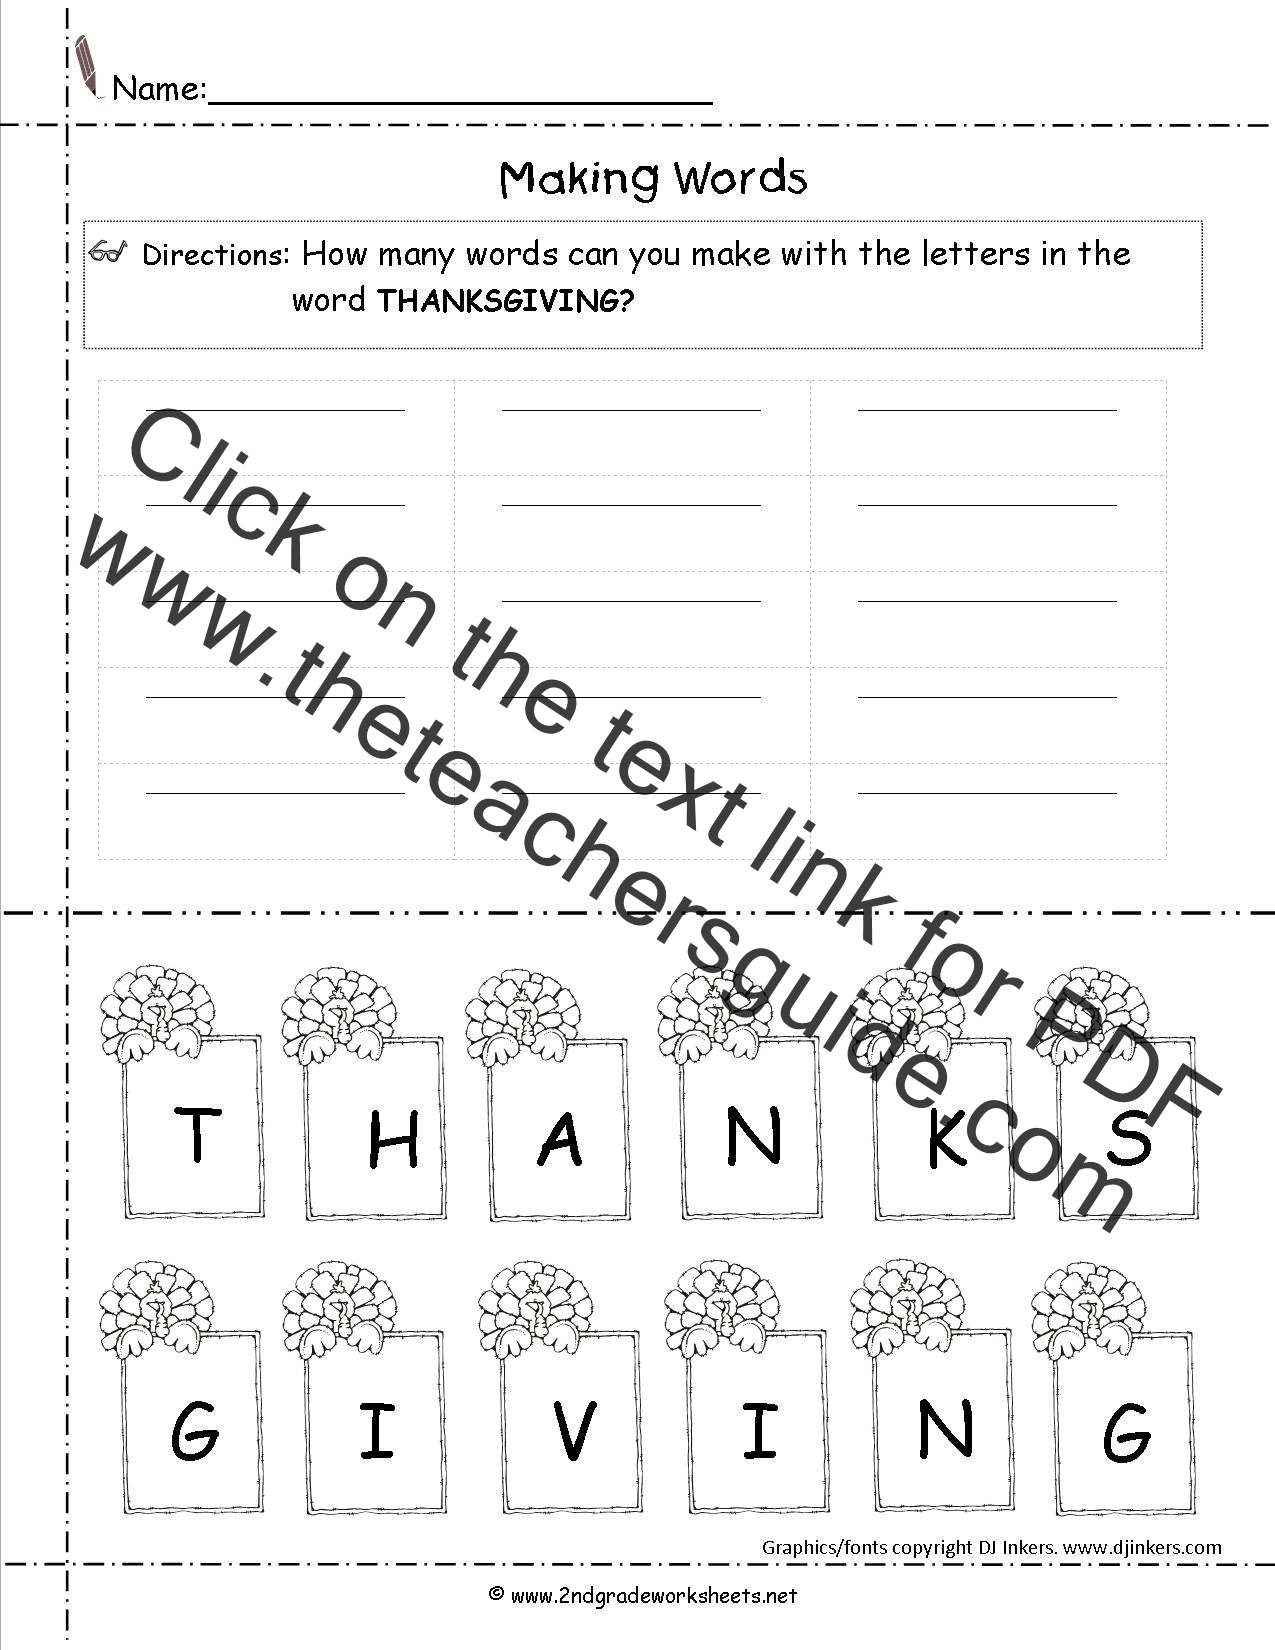 worksheet Fun Thanksgiving Worksheets thanksgiving printouts and worksheets making words worksheet